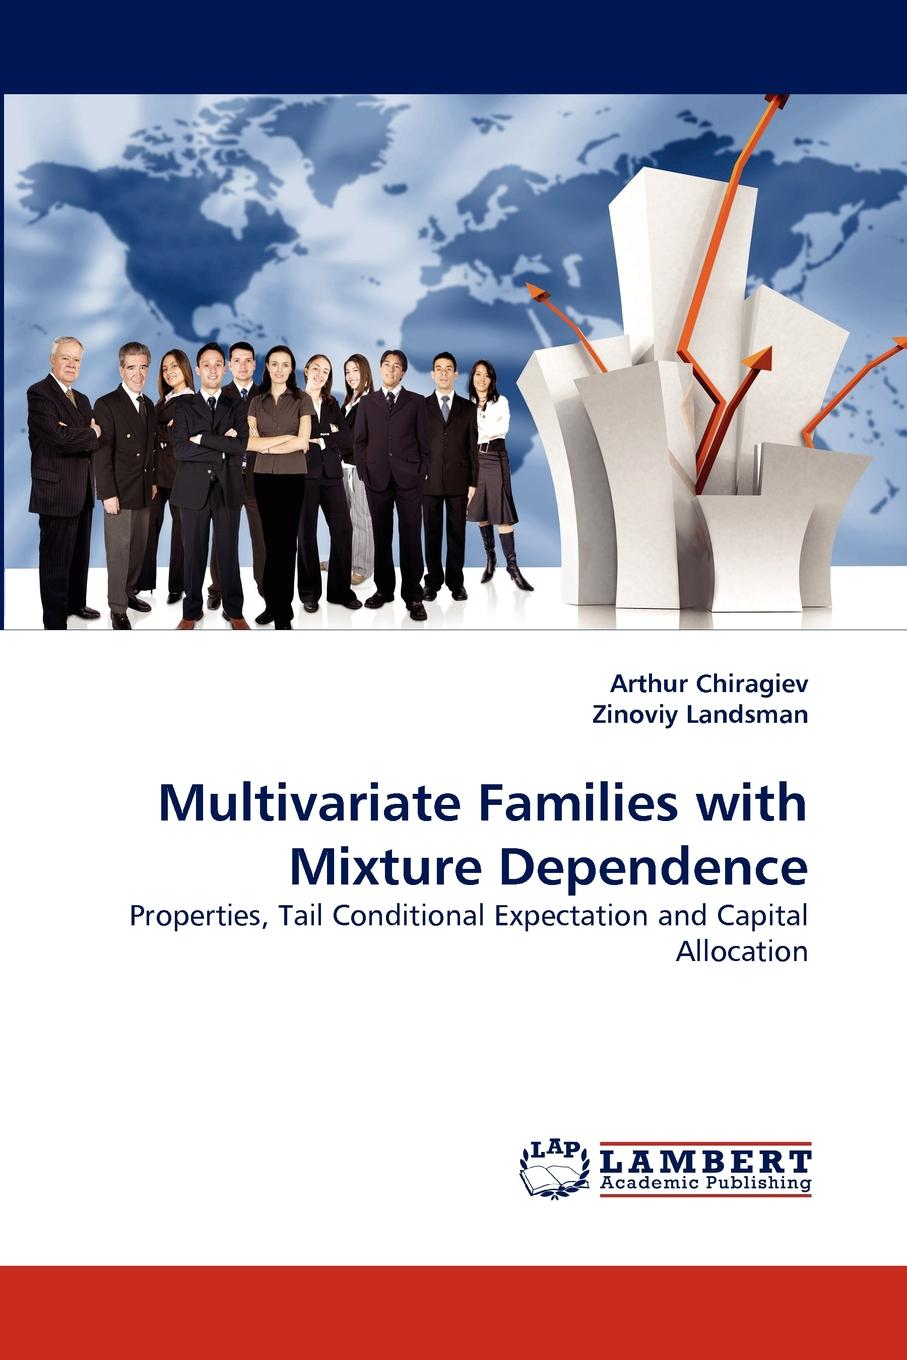 Arthur Chiragiev, Zinoviy Landsman Multivariate Families with Mixture Dependence аккумулятор для телефона craftmann bat 52961 003 для blackberry q10